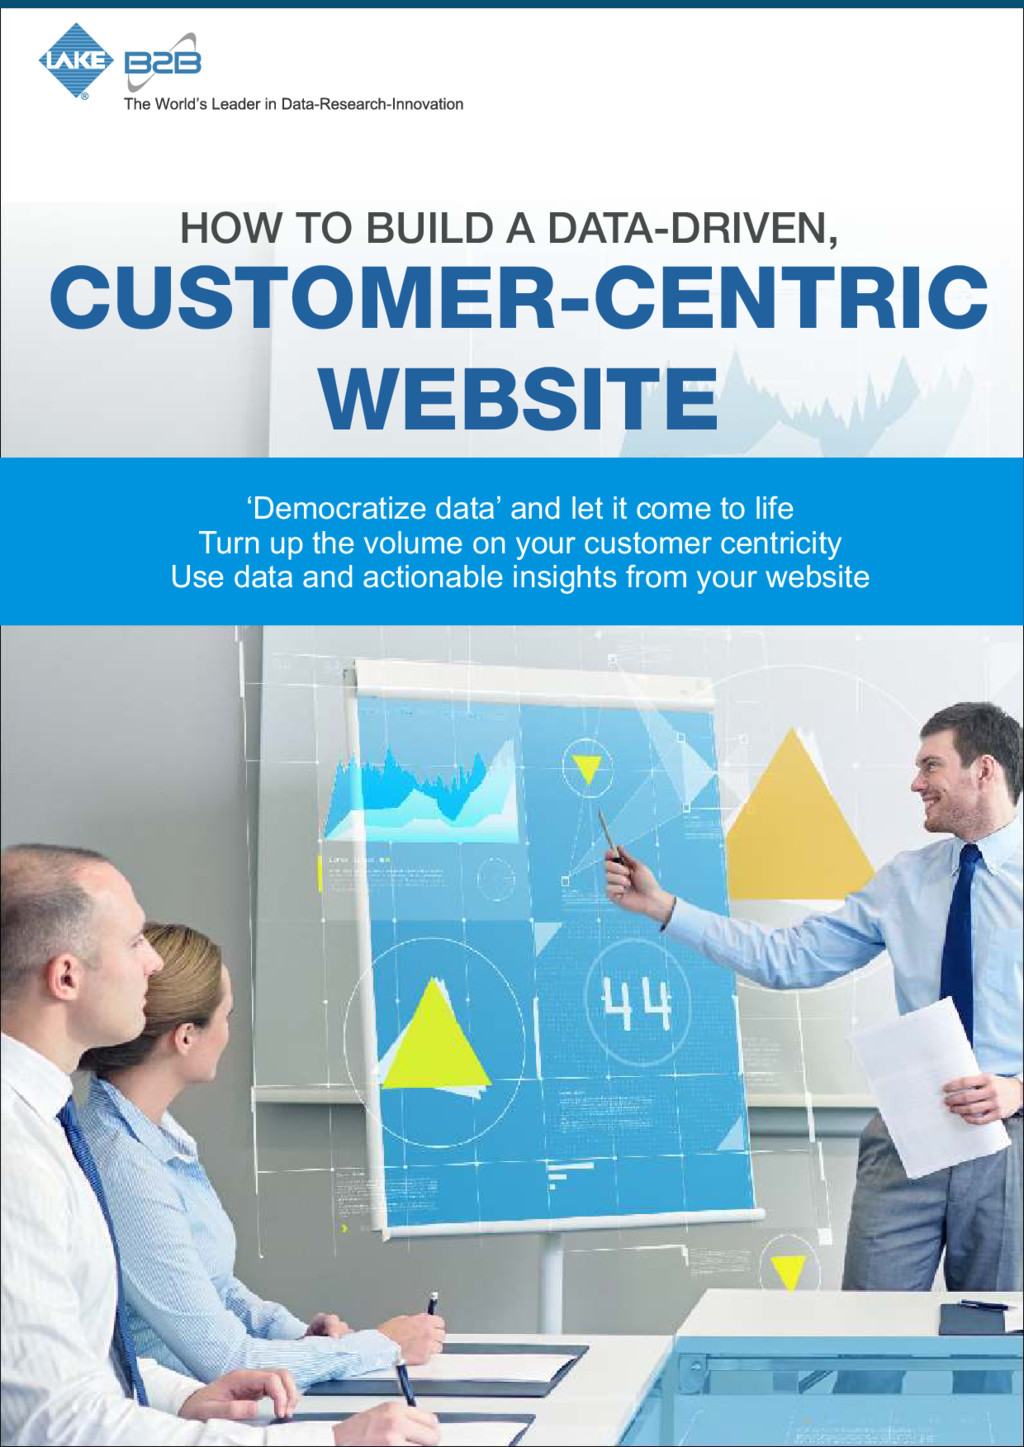 HOW TO BUILD A DATA-DRIVEN, CUSTOMER-CENTRIC WE...